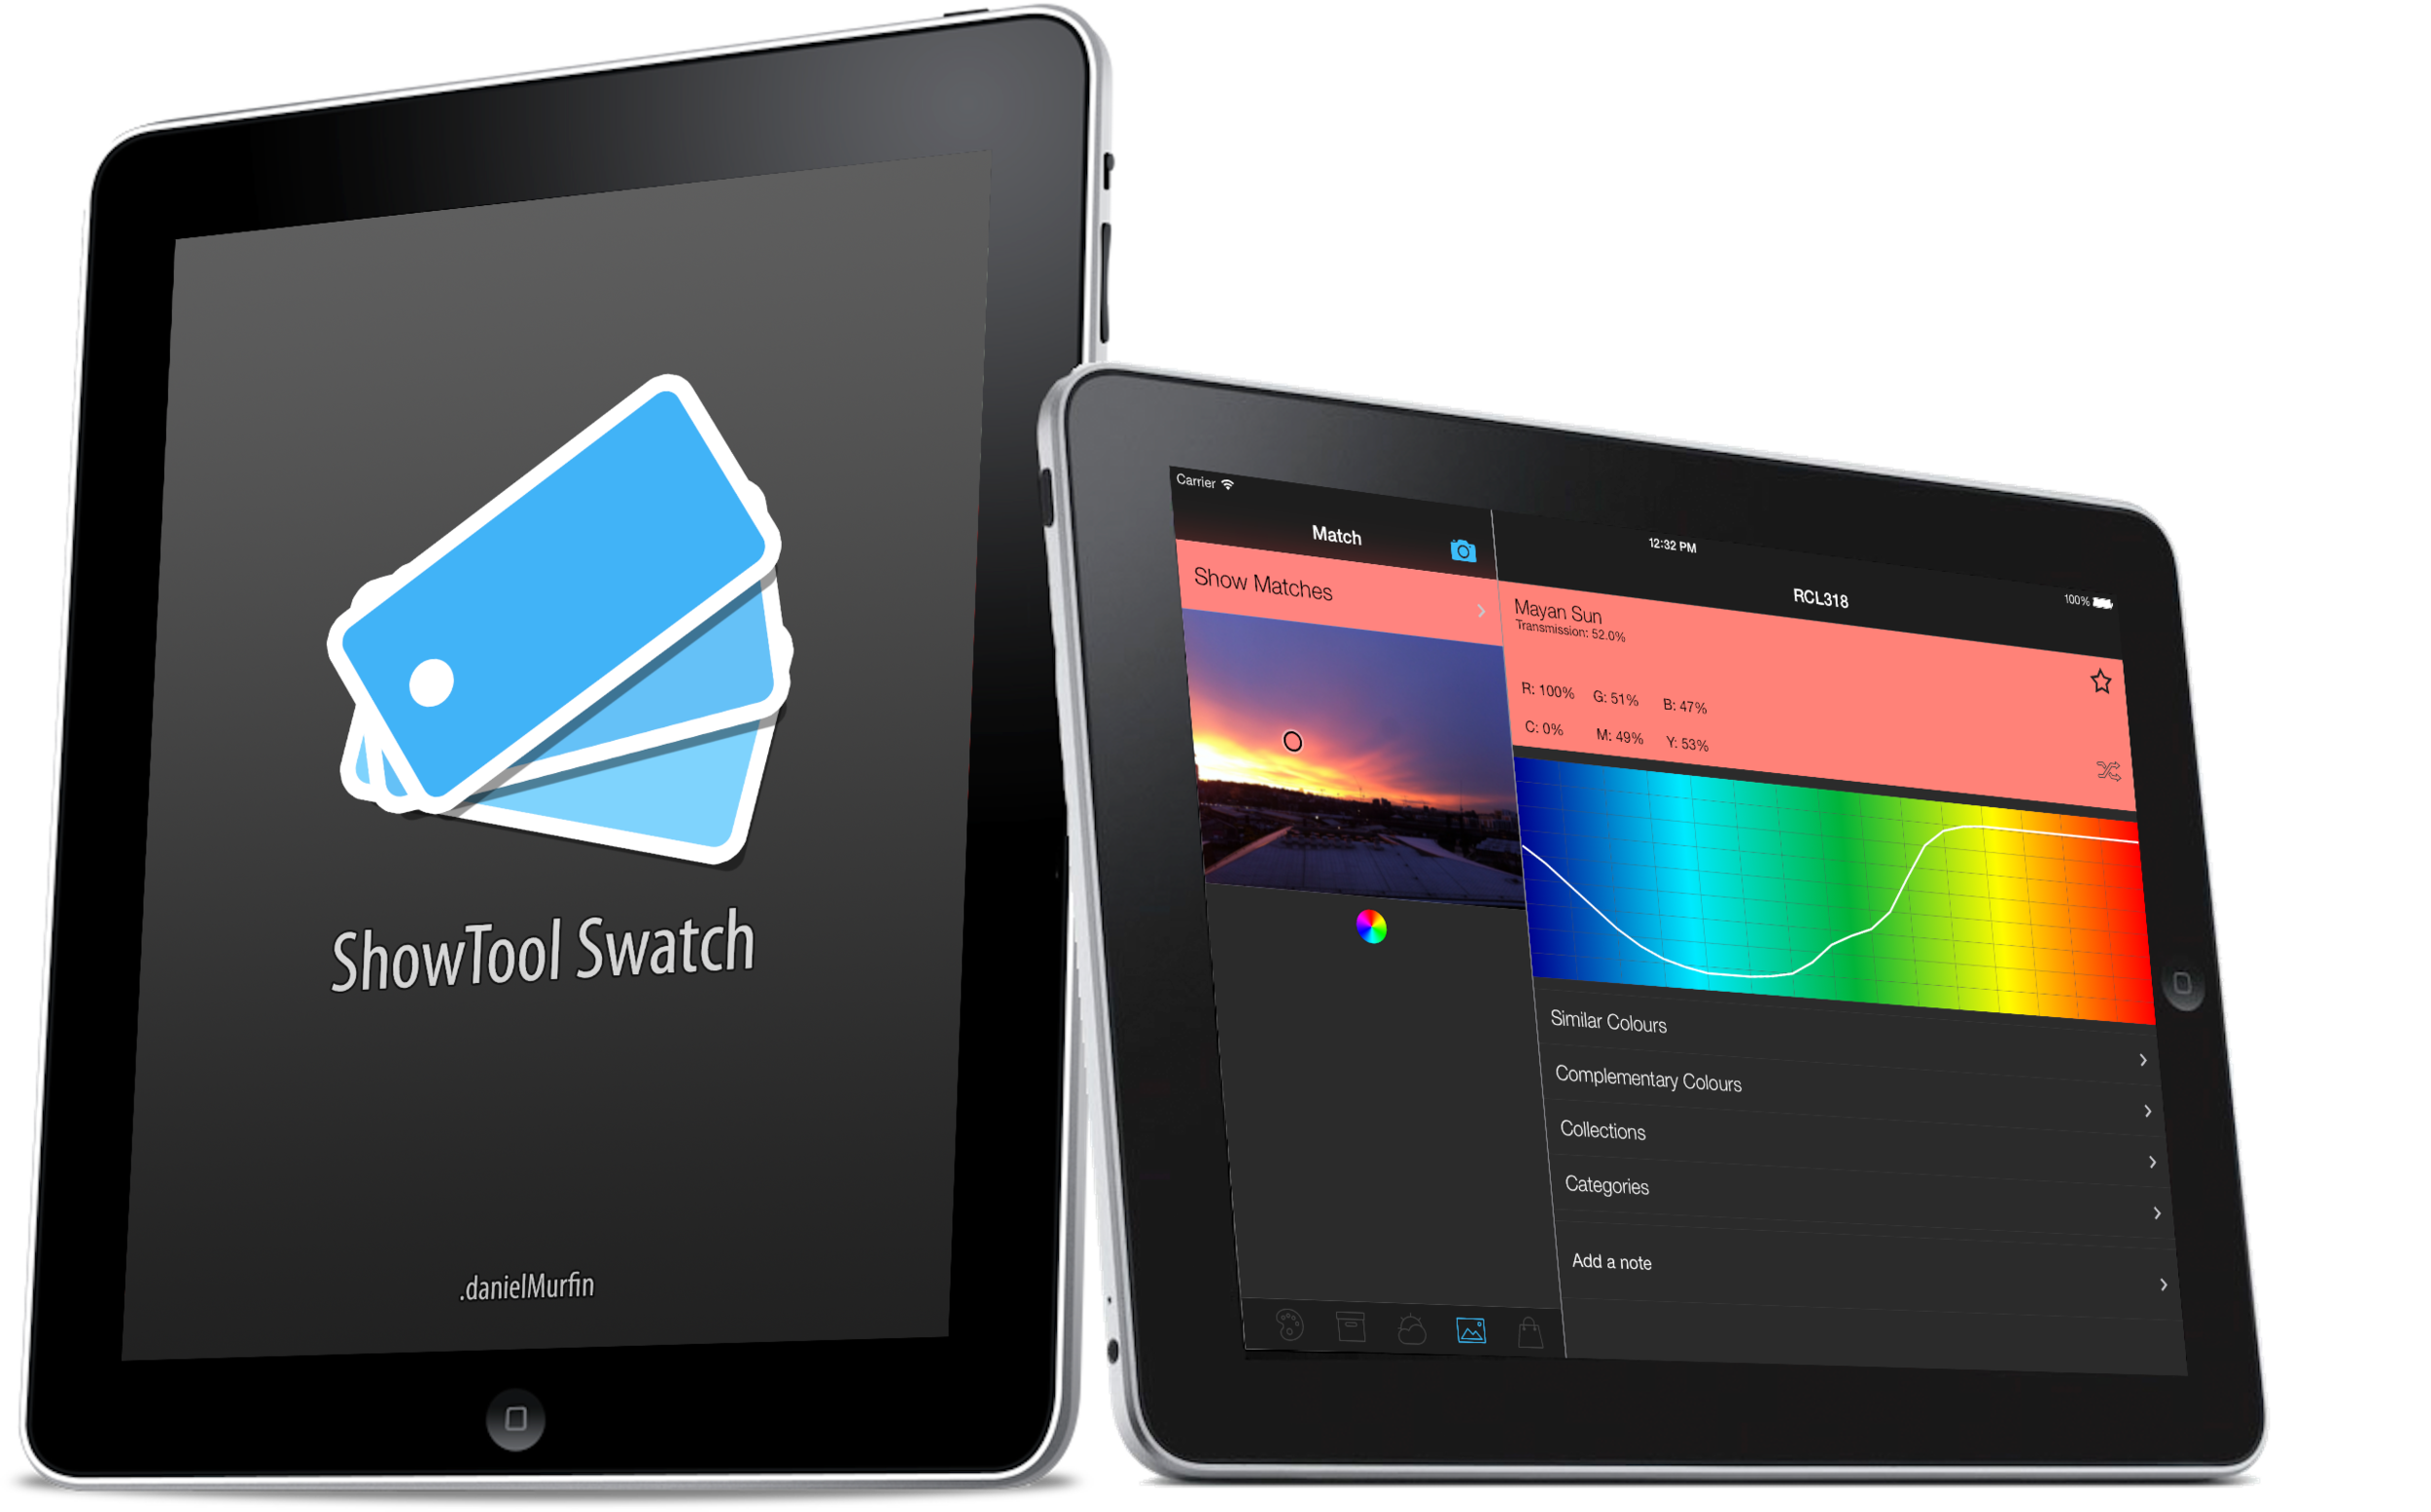 ShowTool-Swatch-iPad-2.png